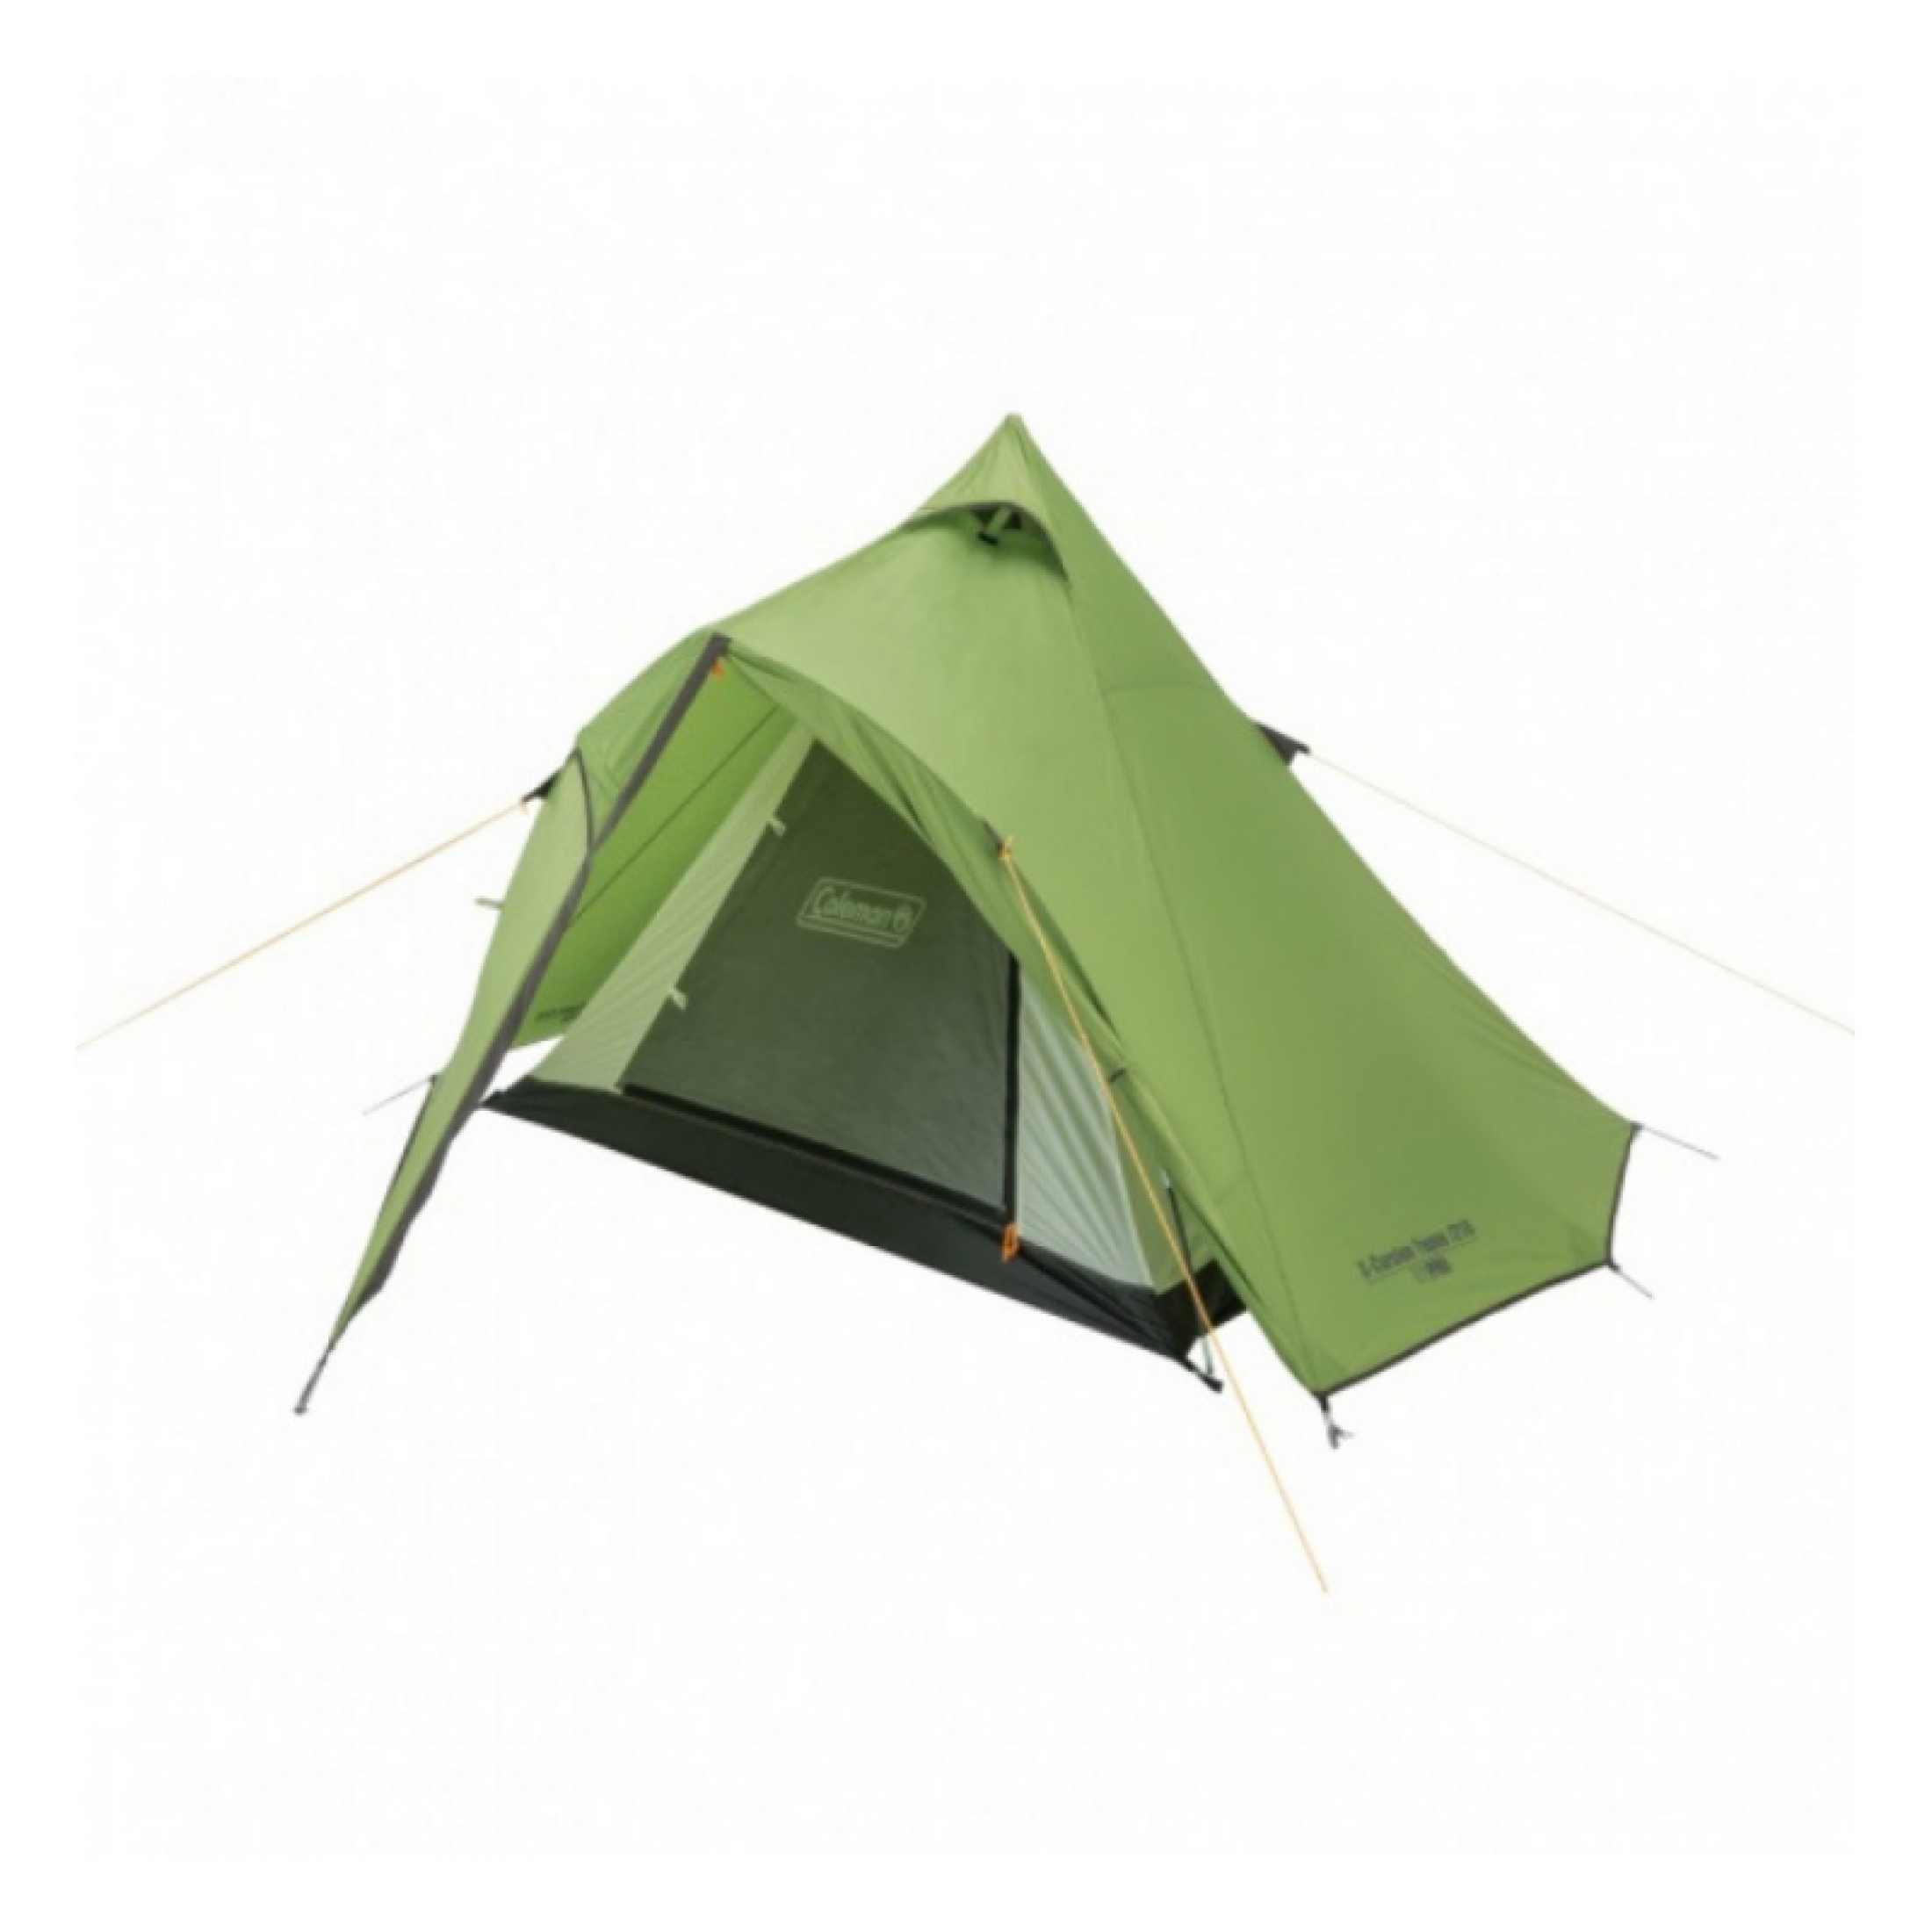 COLEMAN X-Cursion Tepee Tent, camping, hiking, outdoor activities, adventure